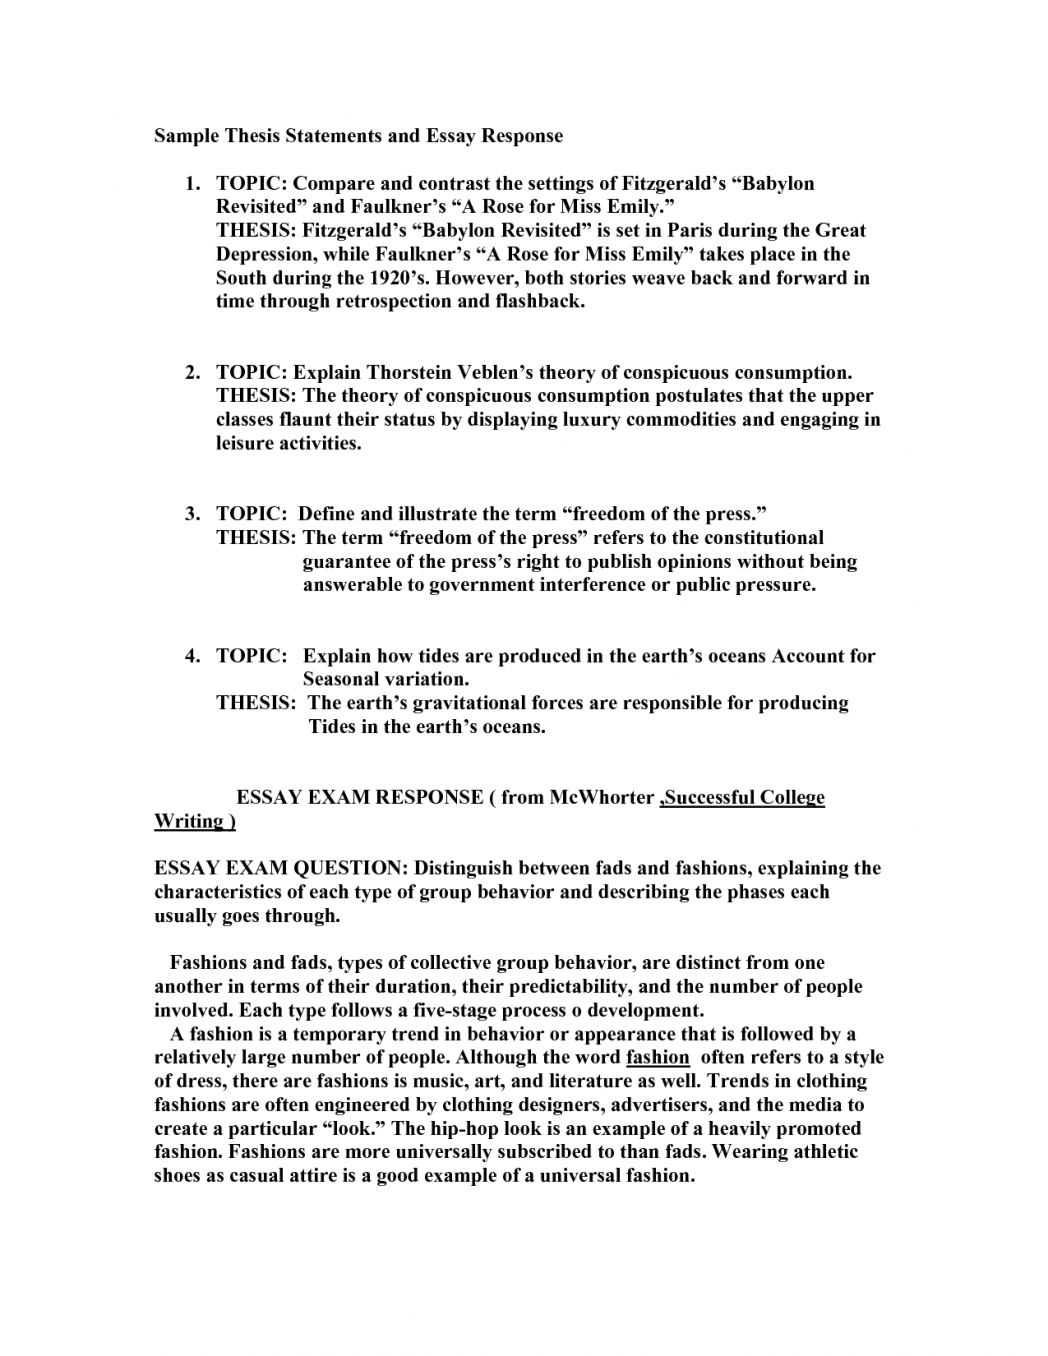 015 What Is Thesis Statement In An Essay Example Of How To Write For About Yourself 6na1p Argumentative Step By Expository High School Ppt Informative Analysis Pdf Fascinating A The Purpose Full